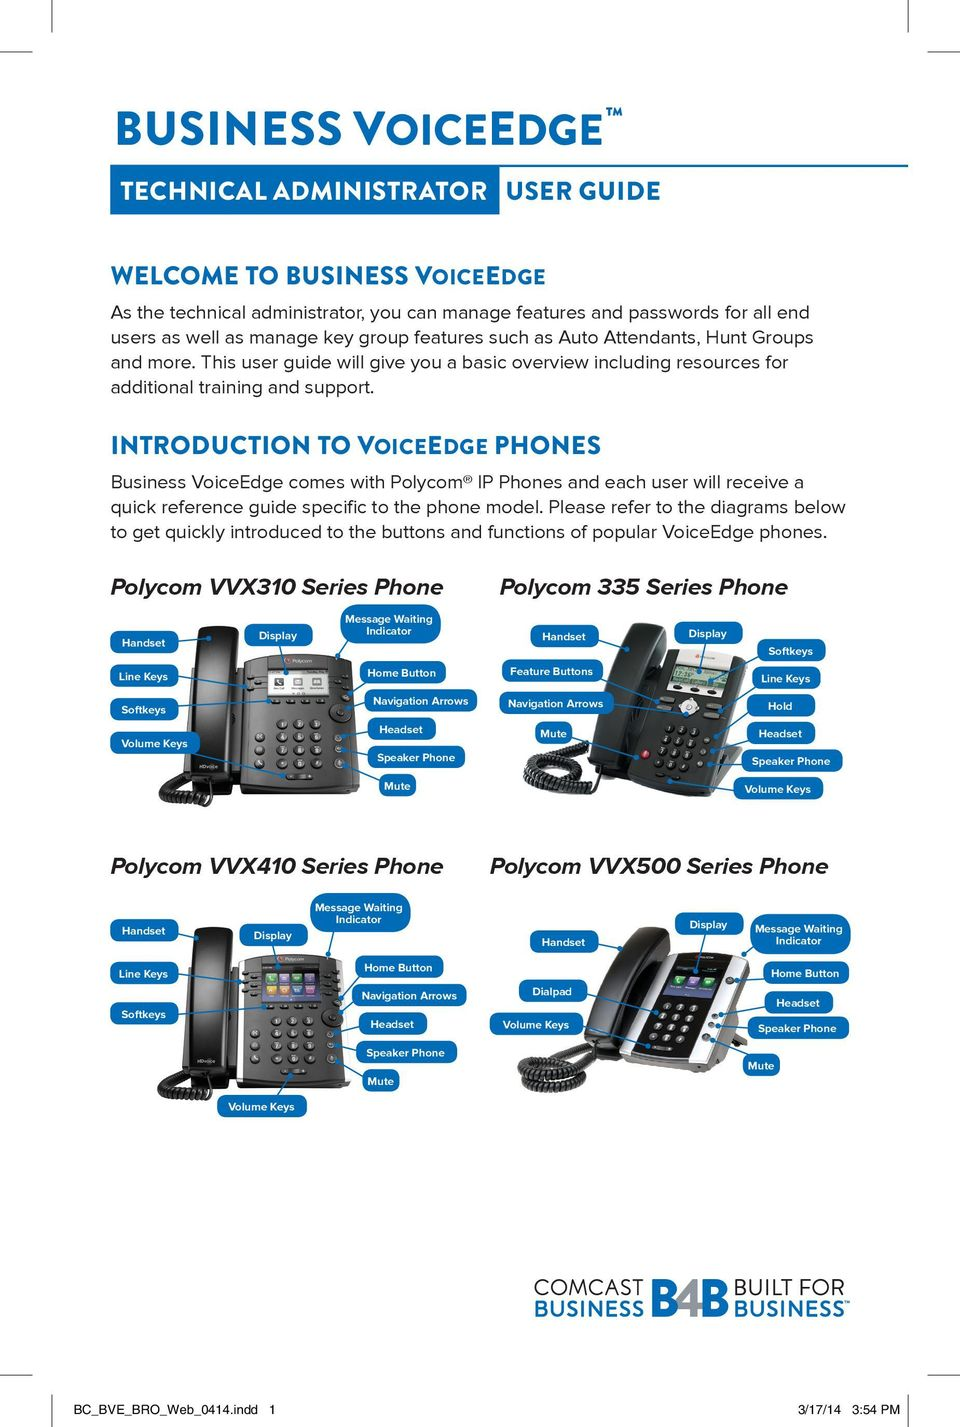 INTRODUCTION TO VOICEEDGE PHONES Business VoiceEdge comes with Polycom IP Phones and each user will receive a quick reference guide specific to the phone model.